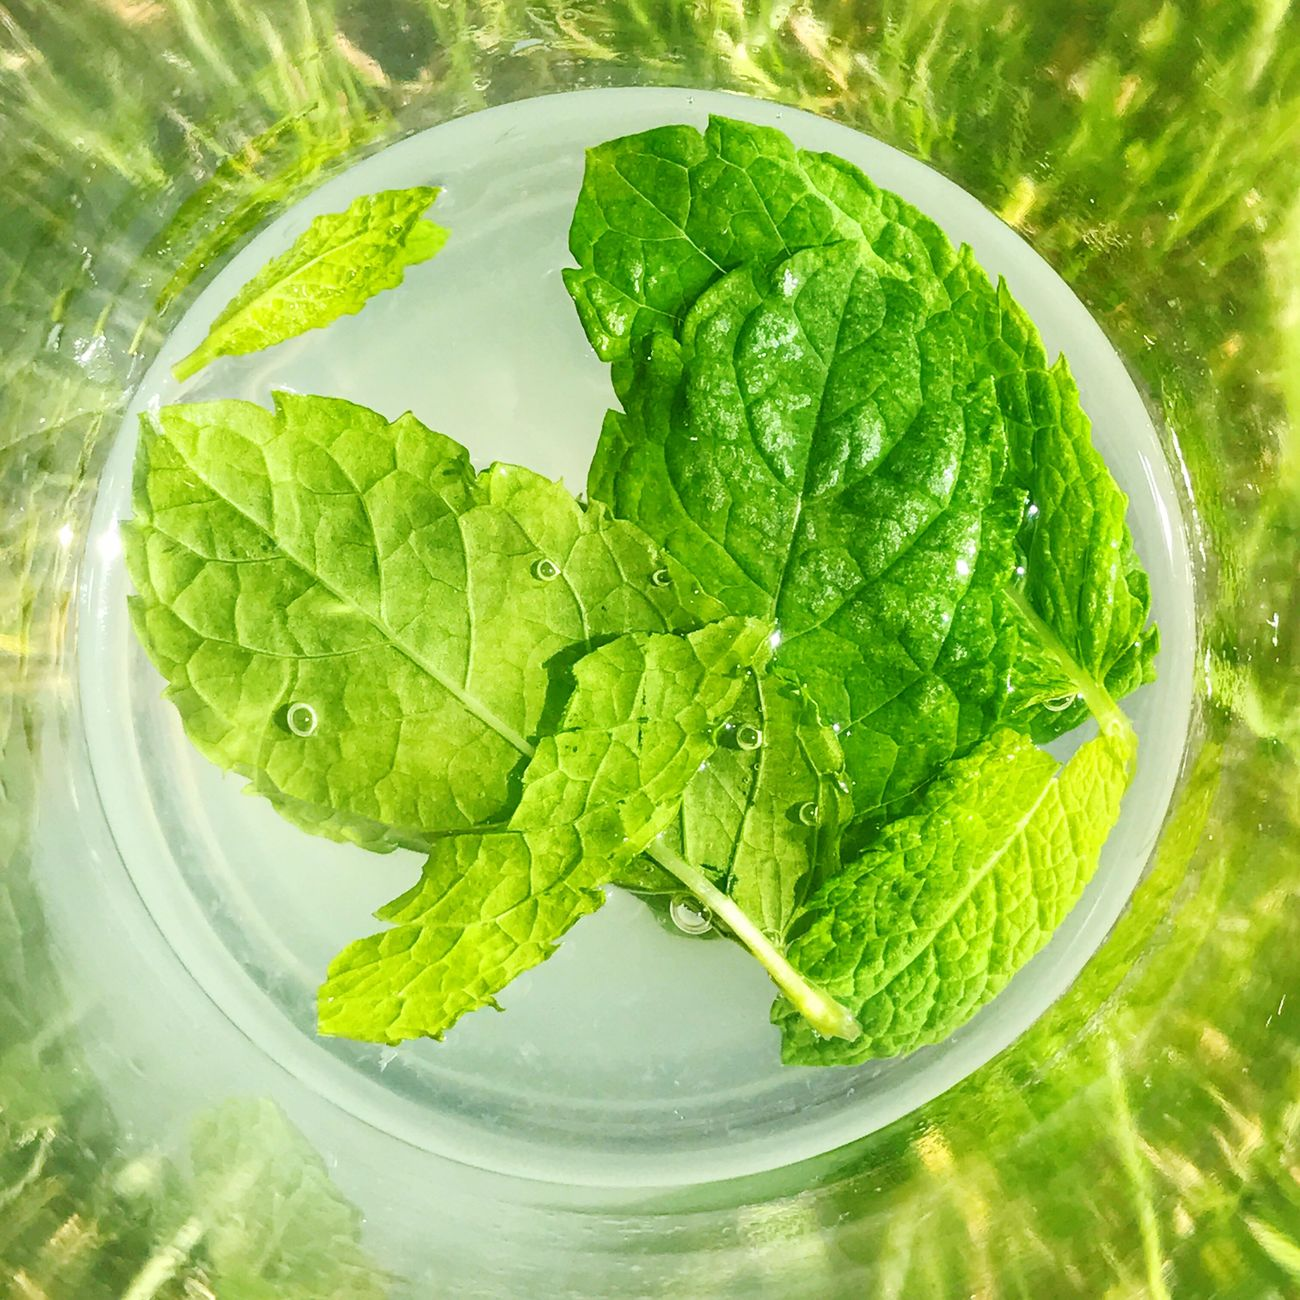 Mint and water in a glass Green Color Food And Drink Leaf Freshness High Angle View Directly Above Food Healthy Eating Vegetable No People Mint Leaf - Culinary Close-up Outdoors No People Close Up Day Ready-to-eat Mint Mint Leaves Water Refreshment Refresh